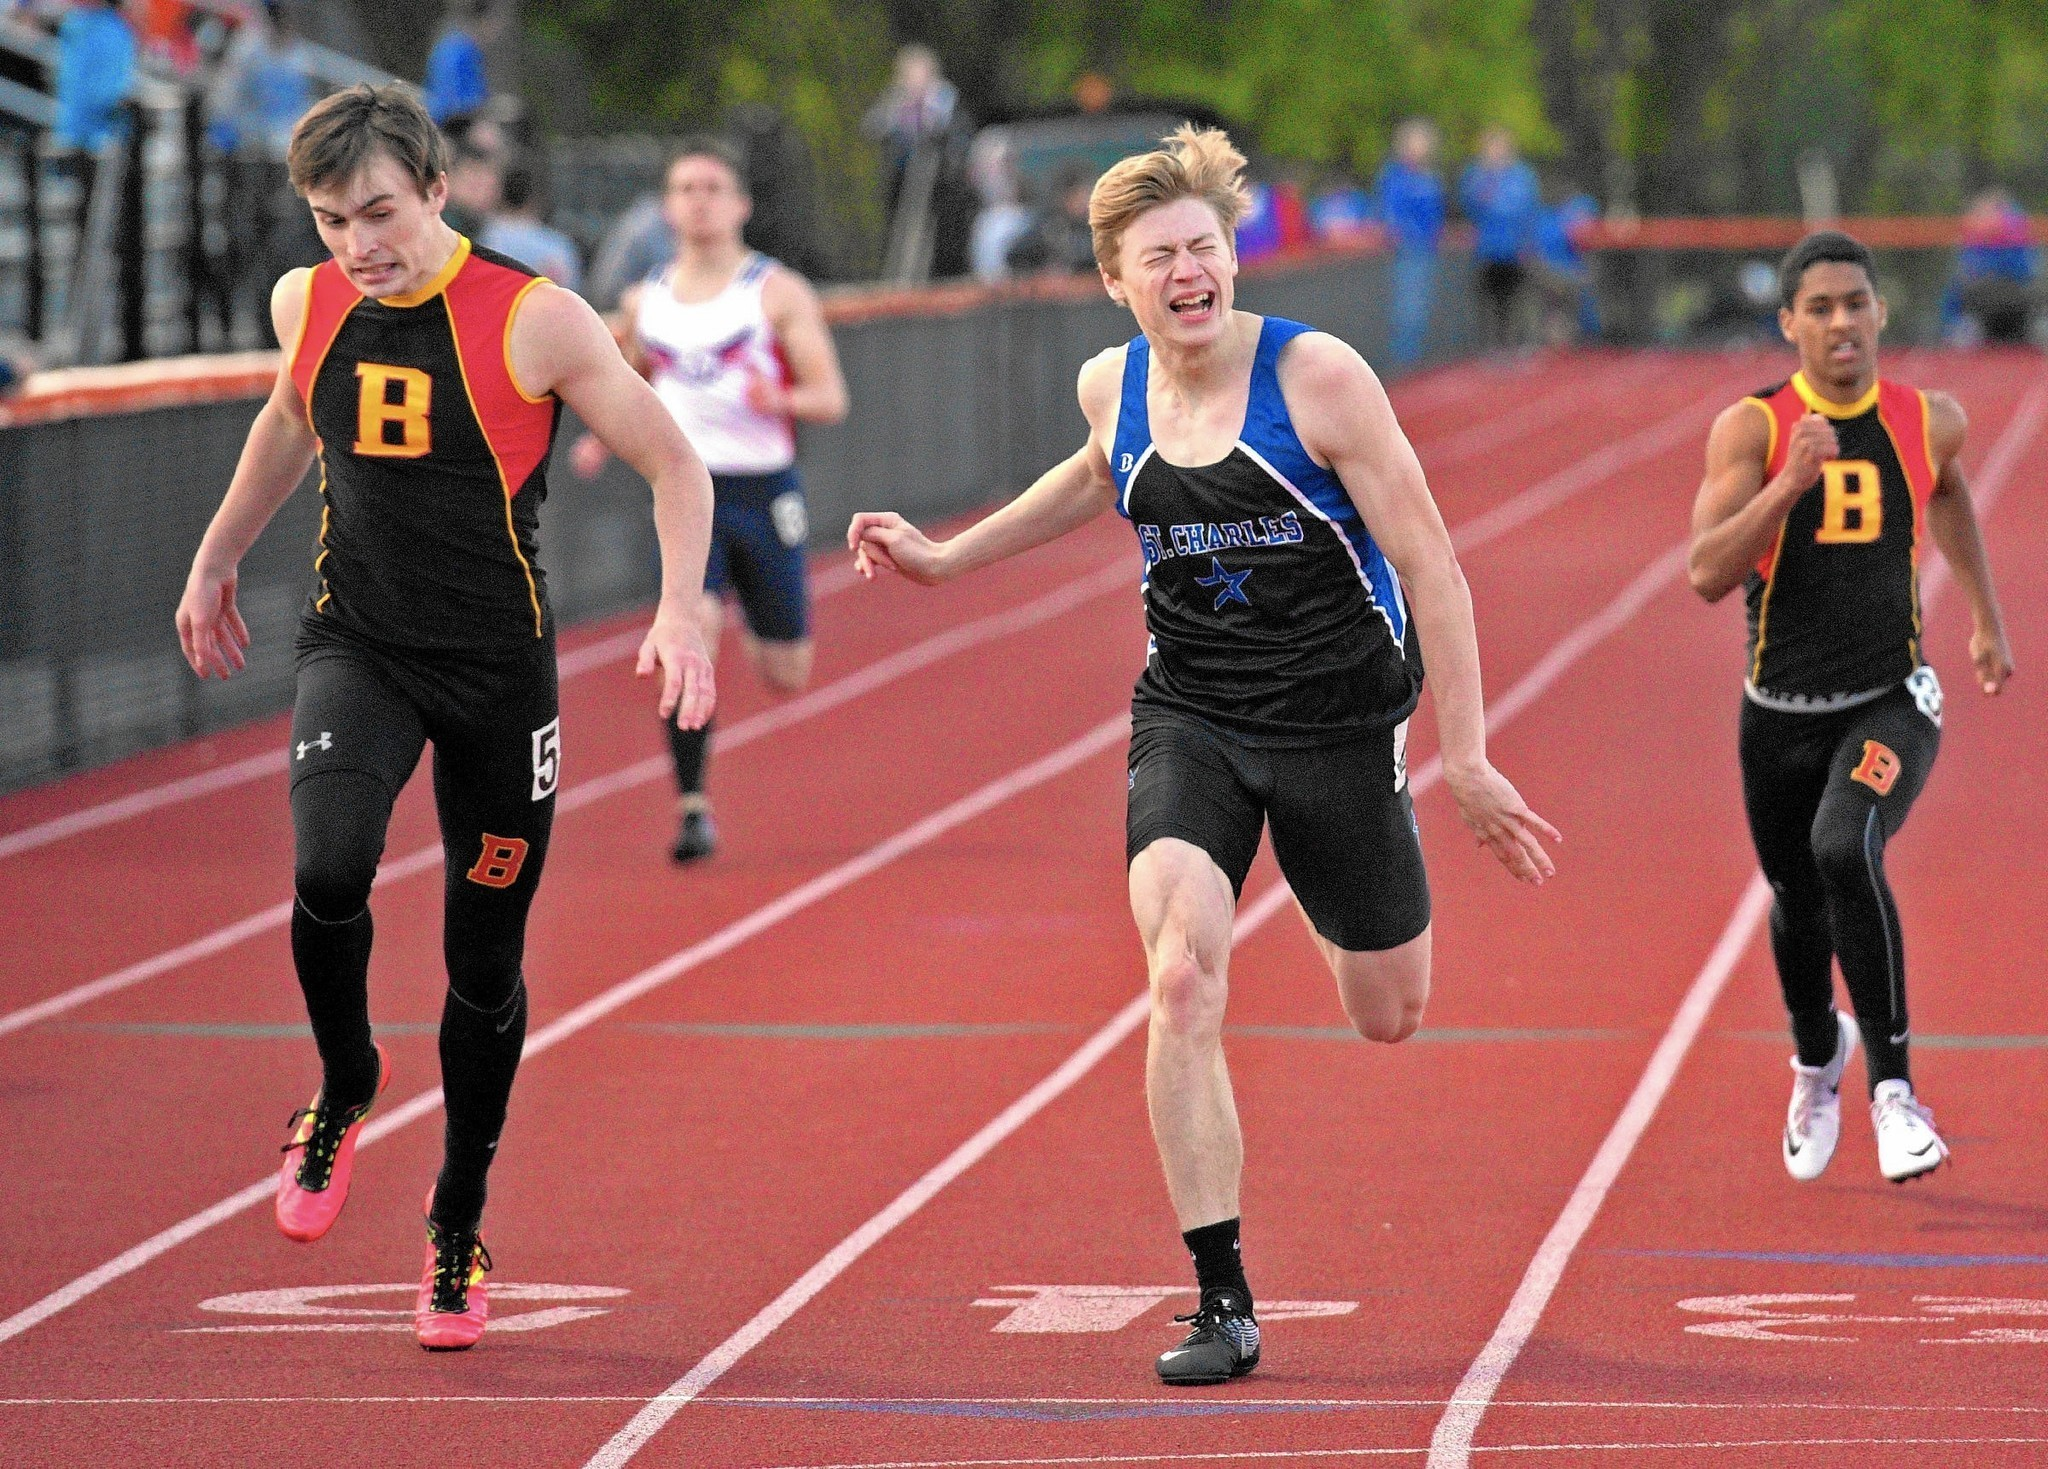 meet kane county singles Batavia wins four individual events and three relays to capture first kane county meet team title in girls track in nine years.